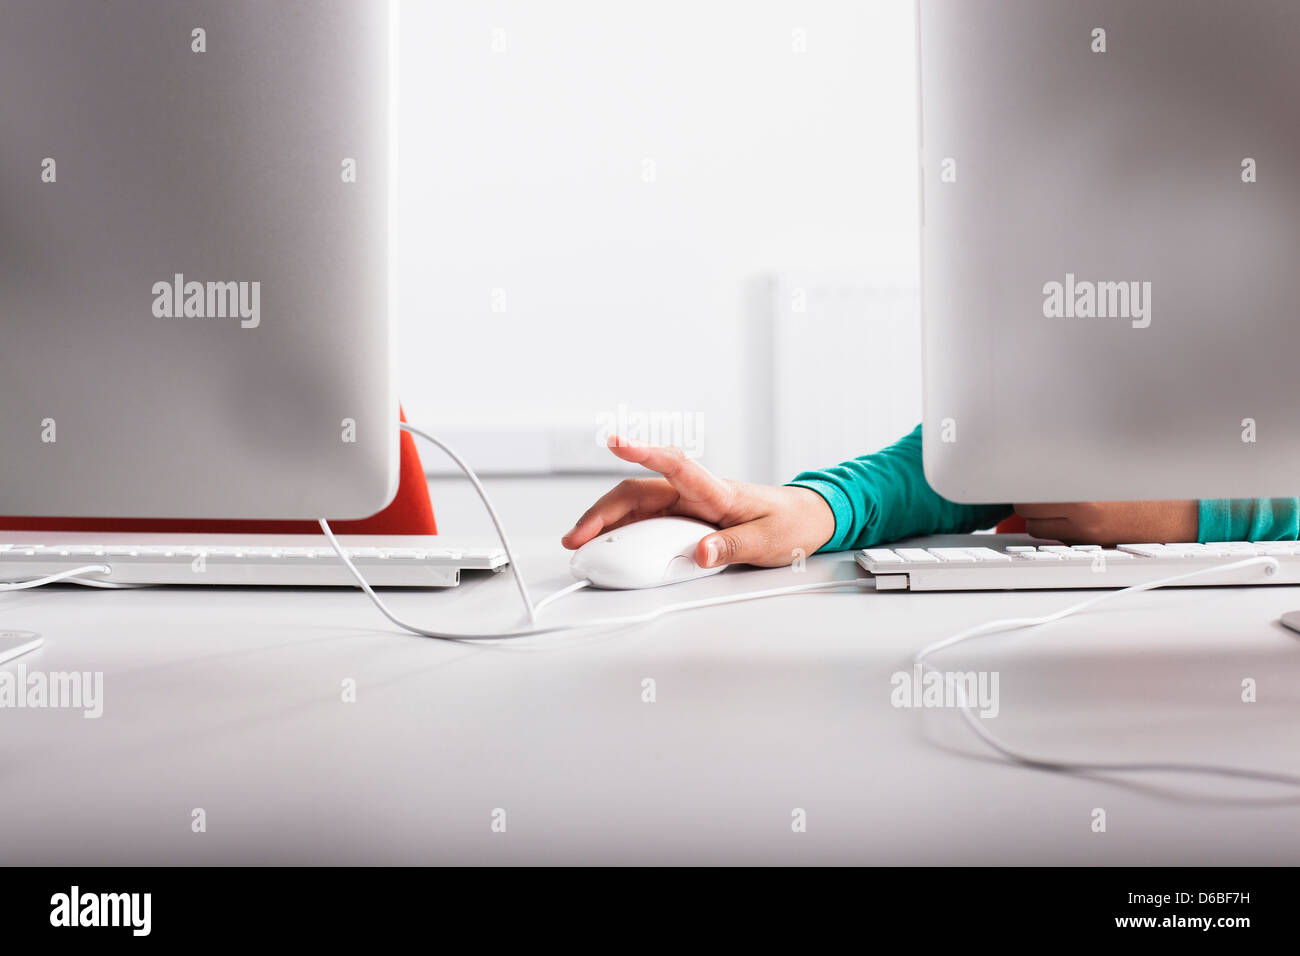 Girl using computer at desk - Stock Image